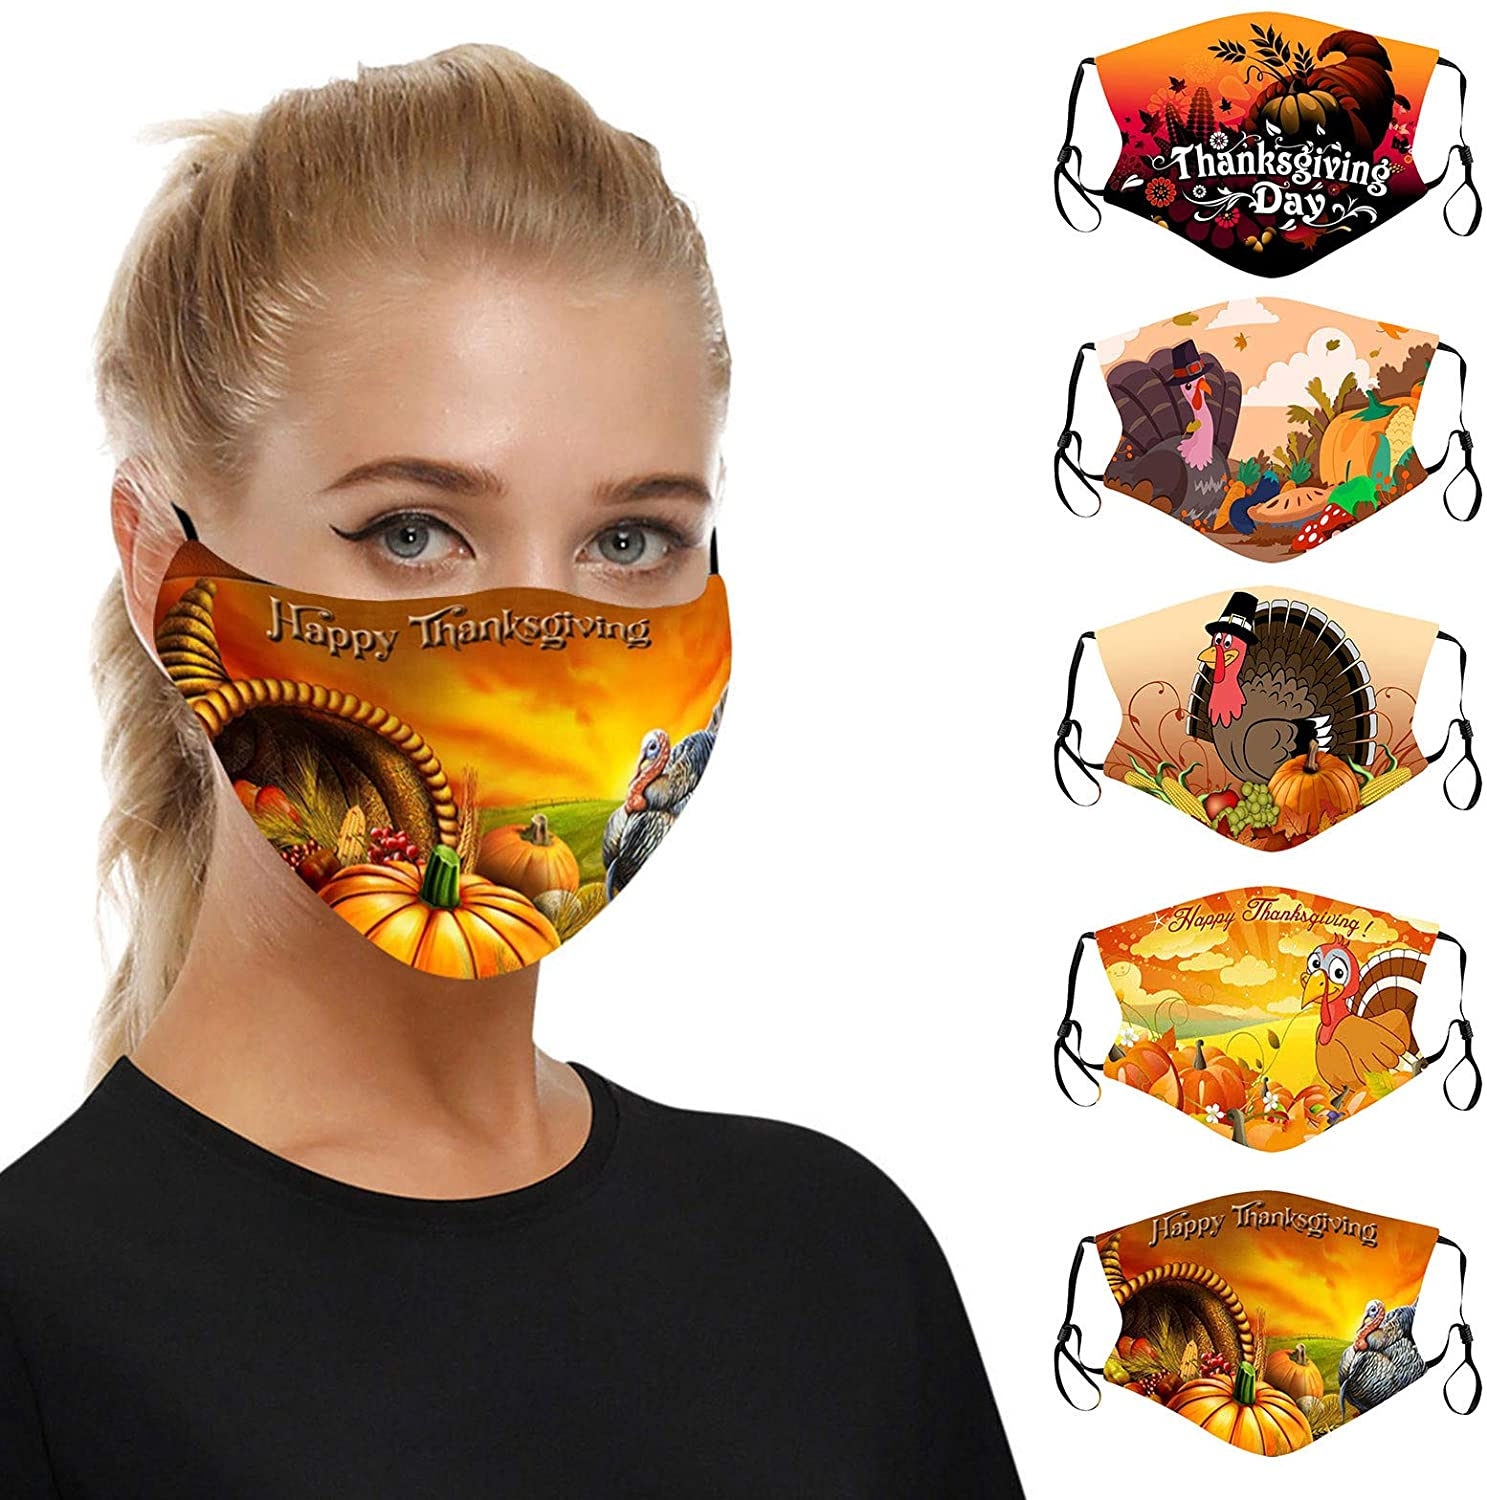 5PCS Thanksgiving Day Cartoon Turkey Face_MASK Adults Face Covering Face Protection for Women and Men, Adjustable Earloops Fashion Outdoor Washable Reusable Filter Pocket Face Bandanas (USA in Stock)